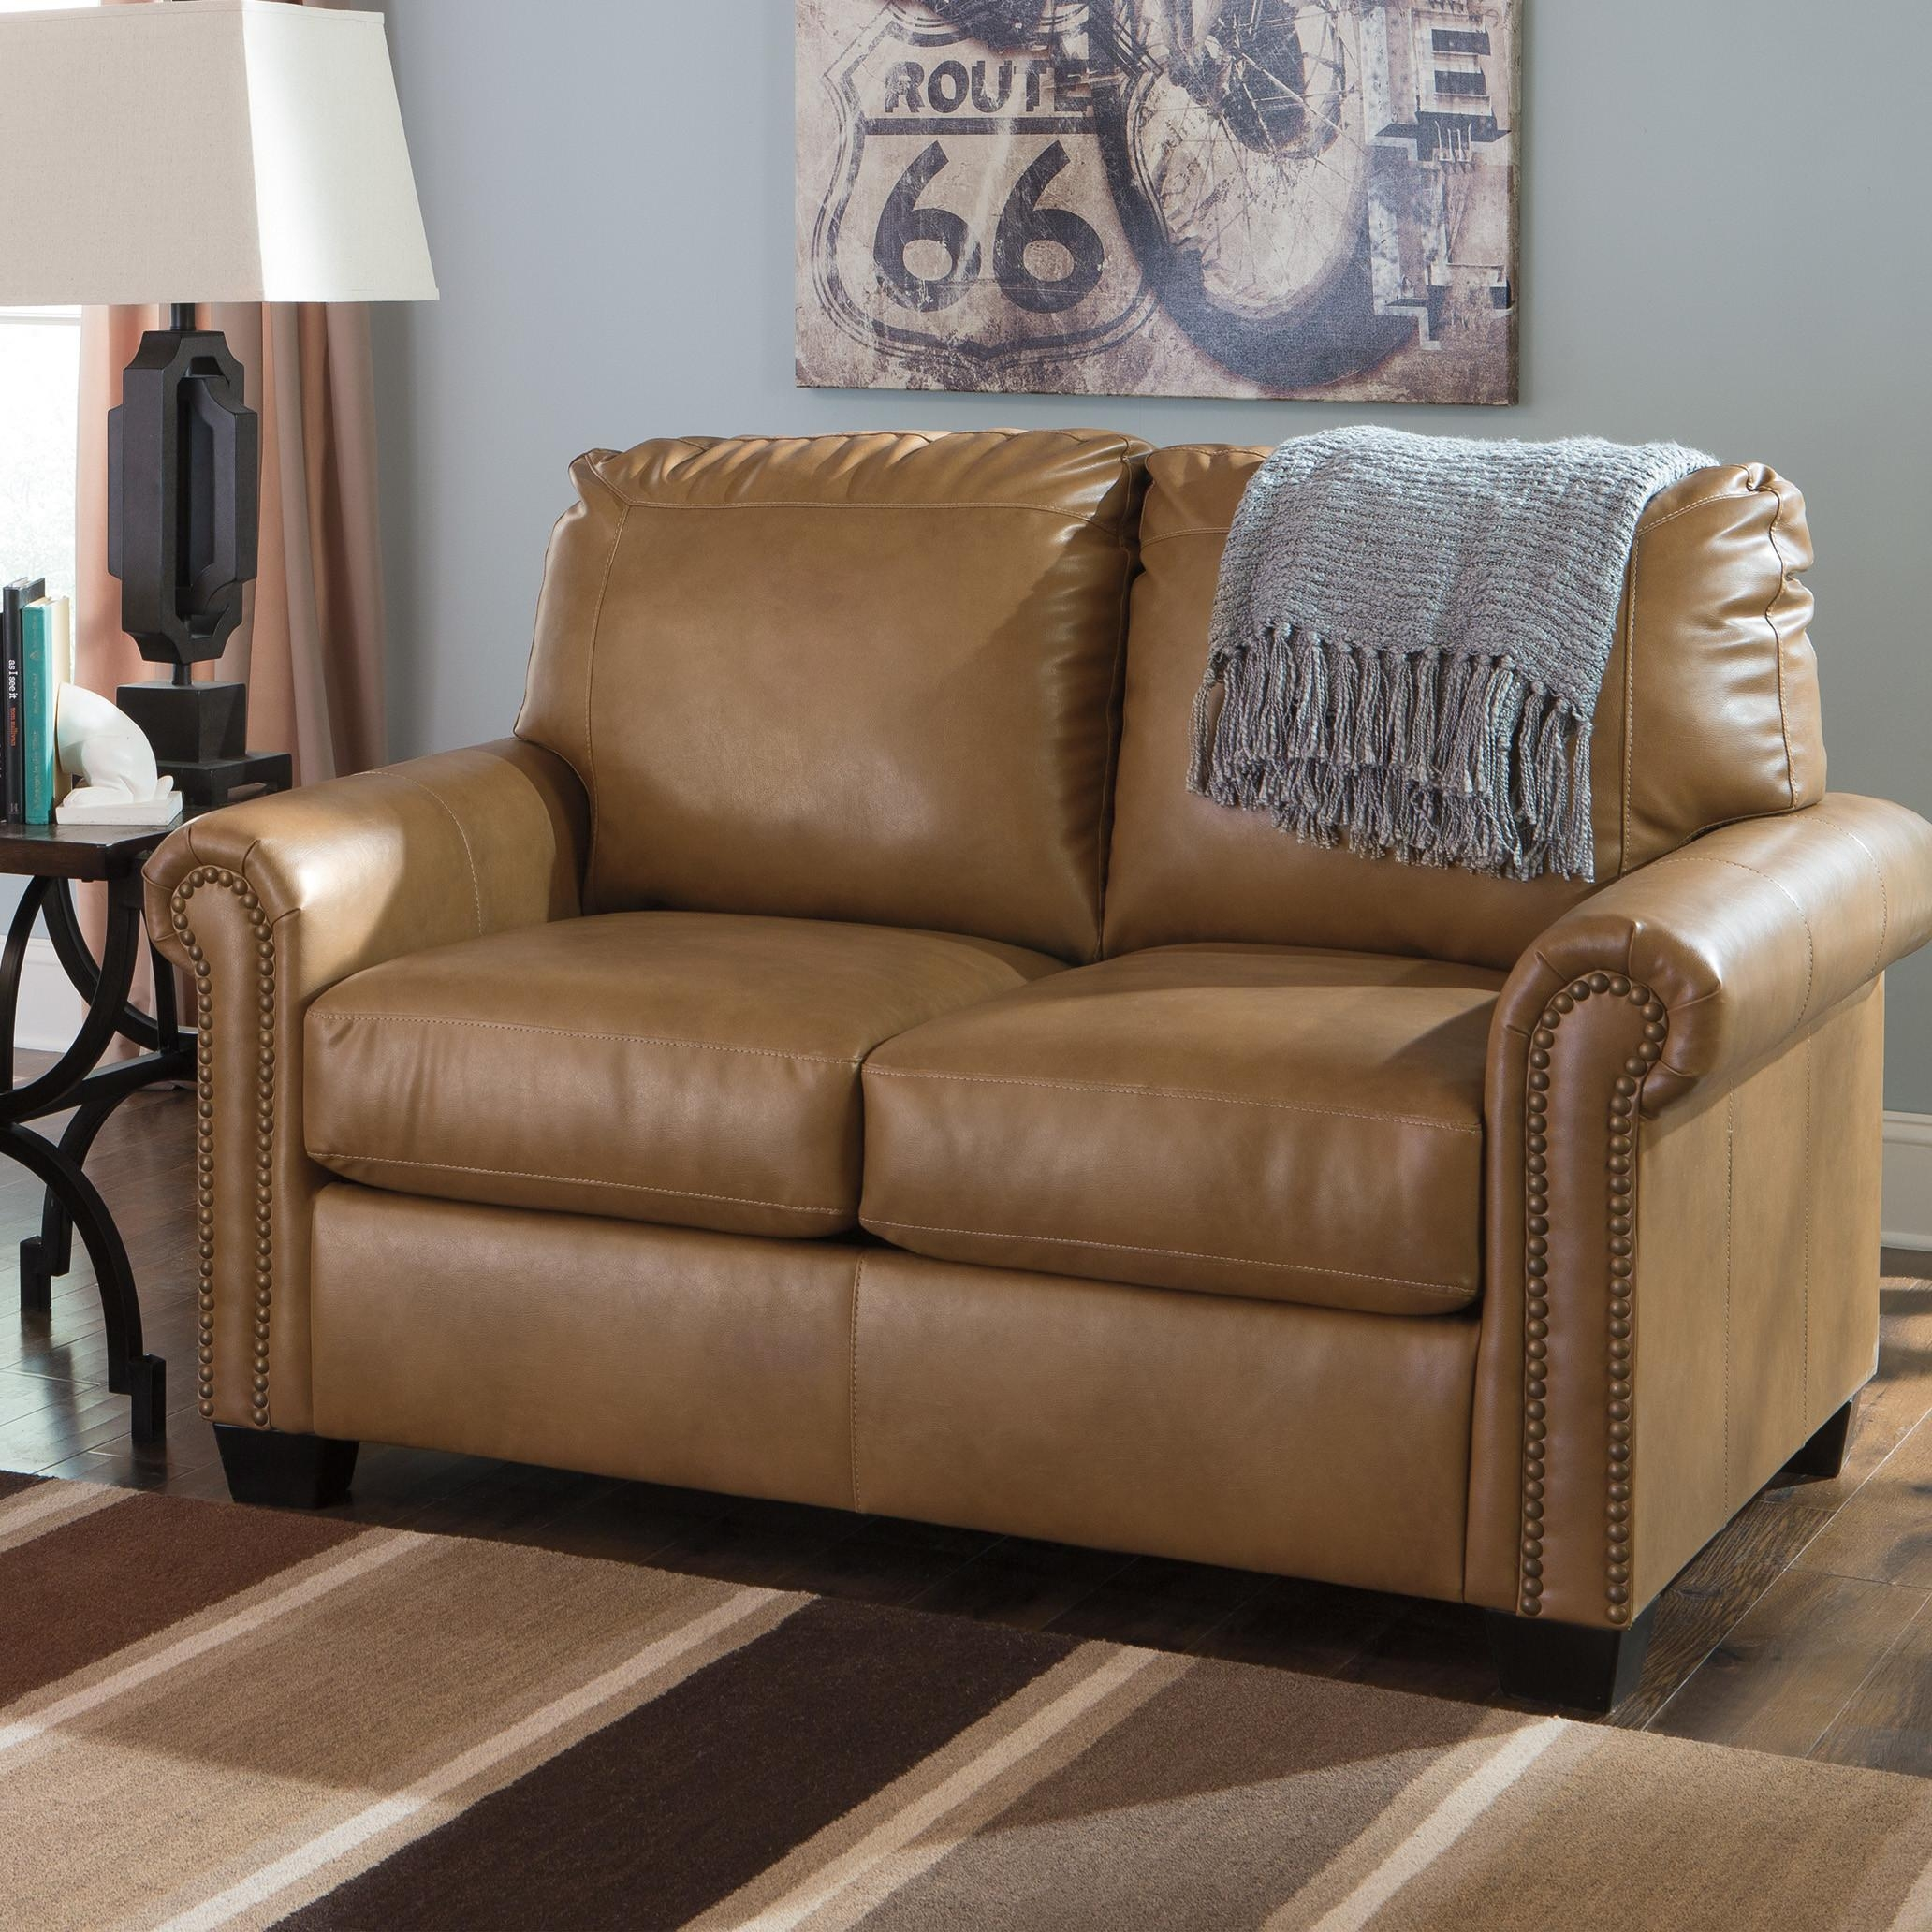 Condo Size Sofa With Ideas Gallery 38285 | Kengire Intended For Condo Size Sofas (Image 12 of 20)